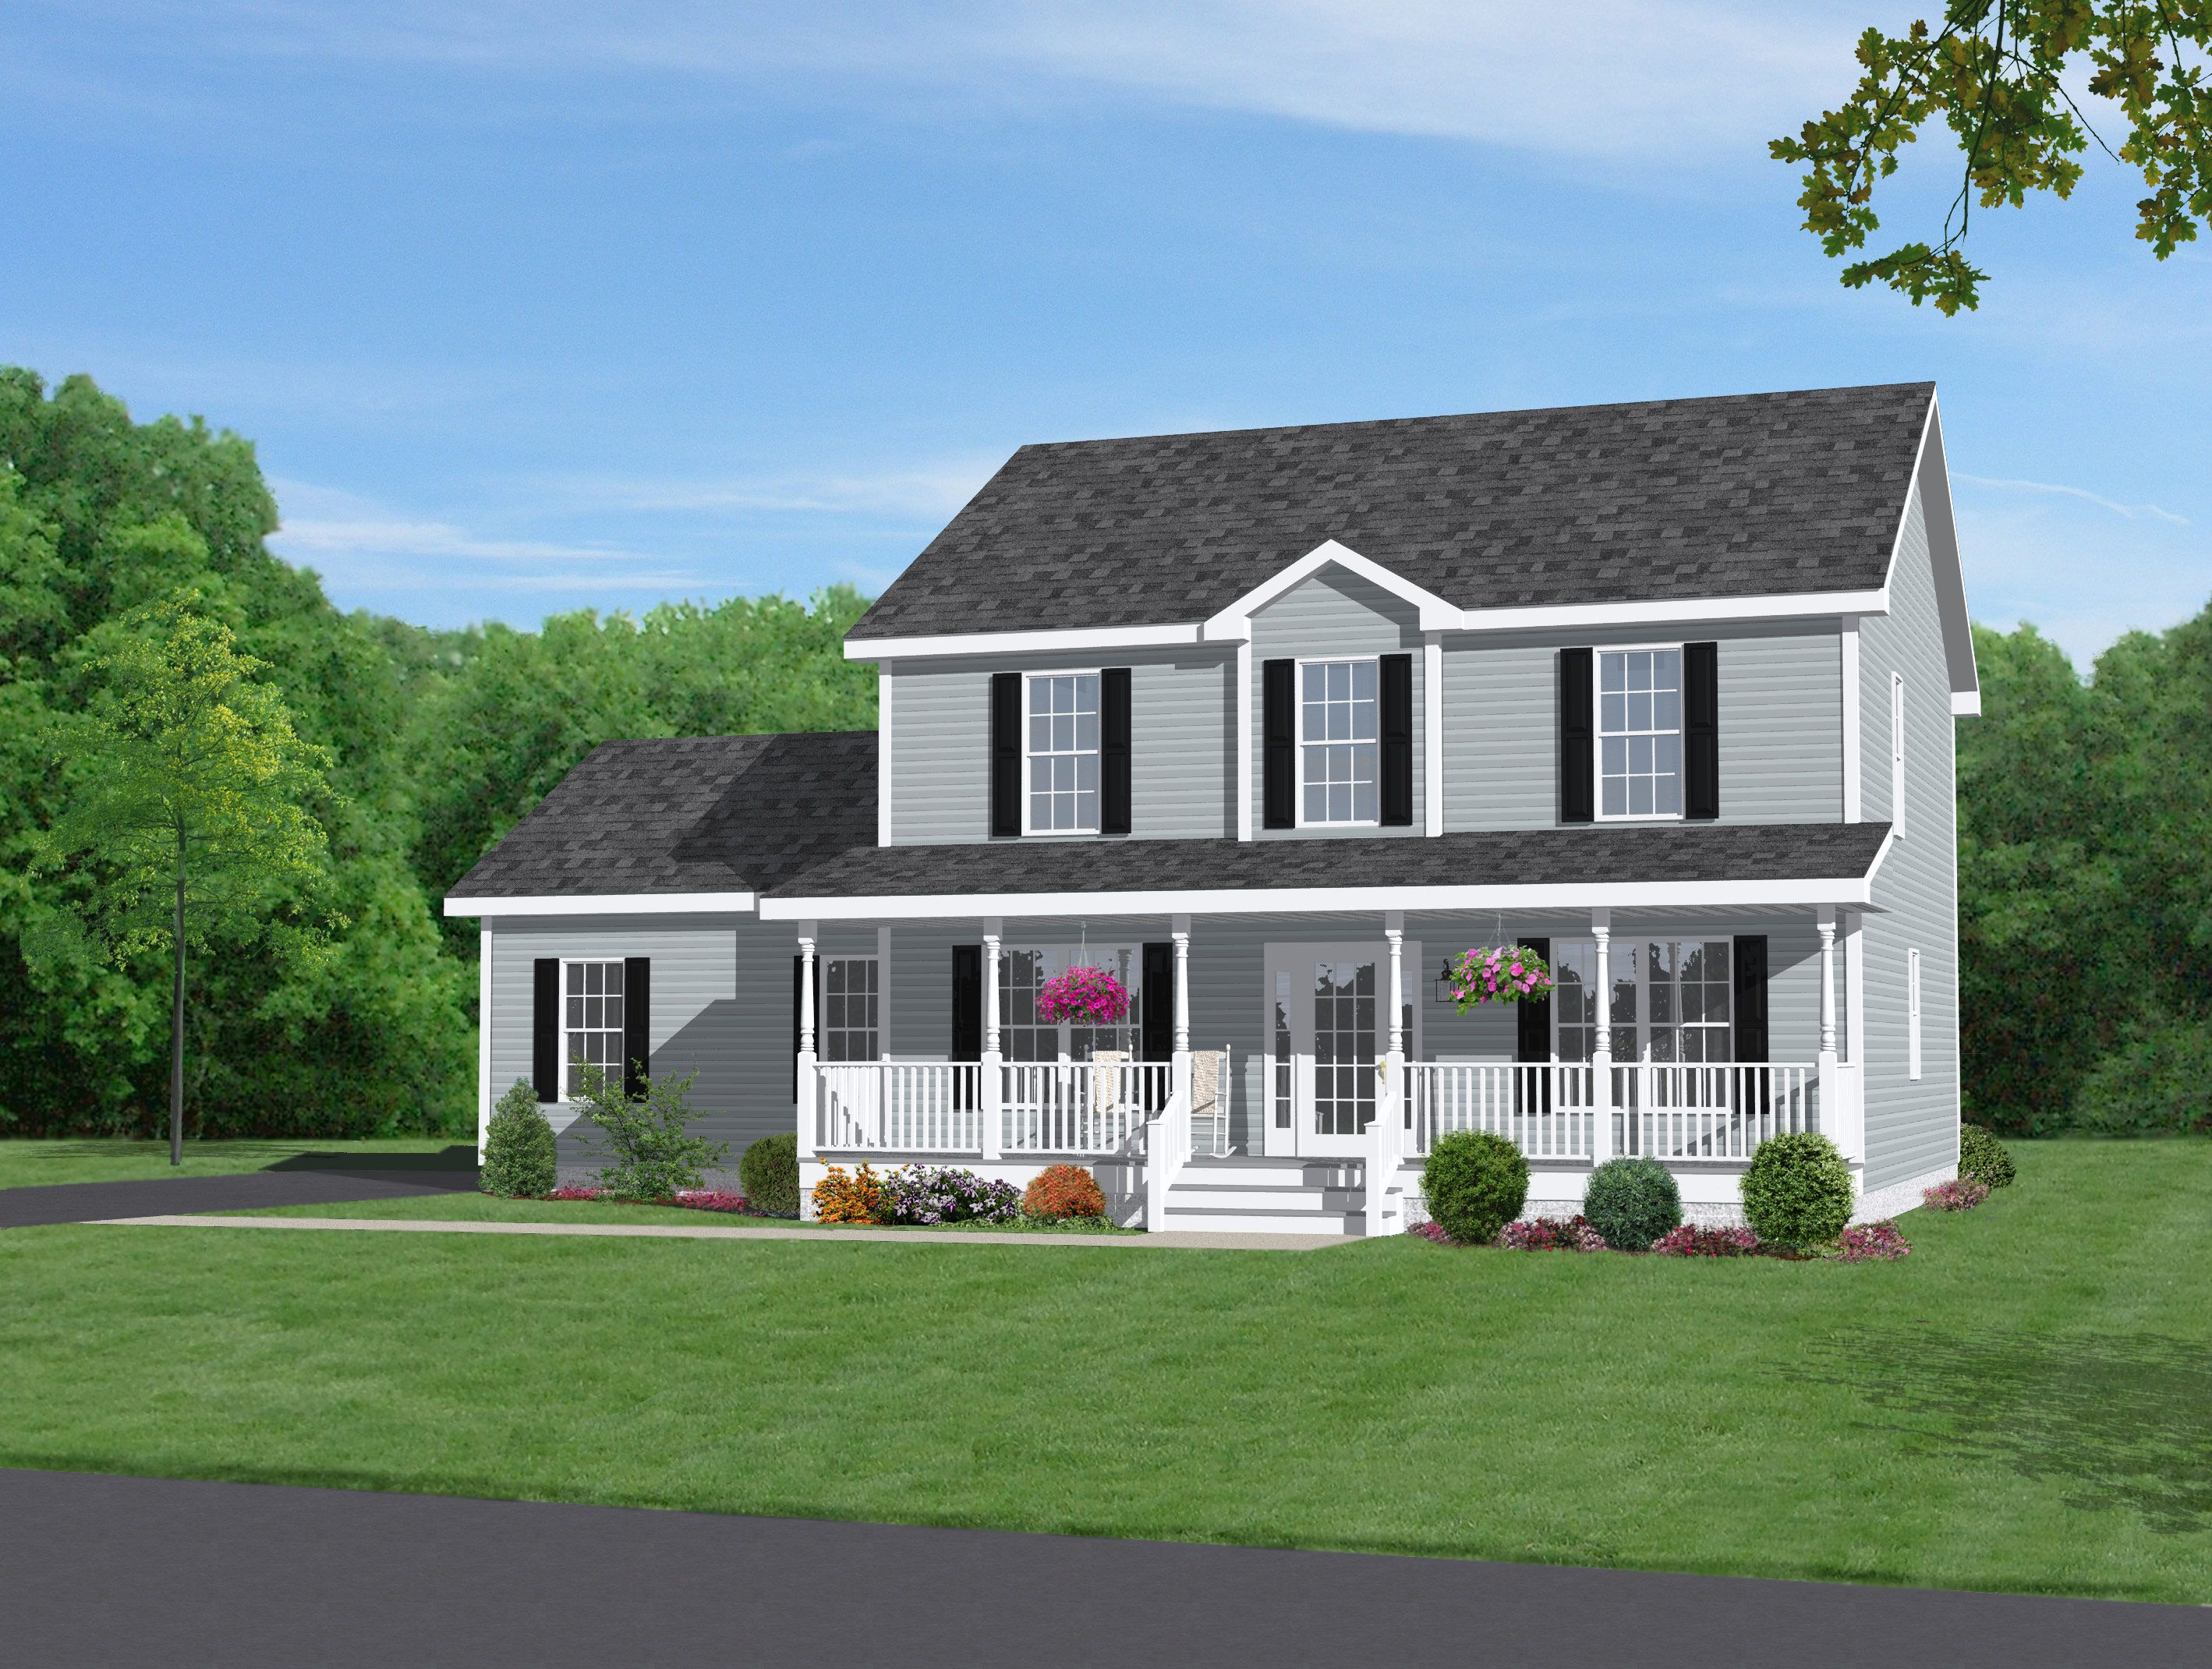 Best two story house plans 2016 for Two story farmhouse plans